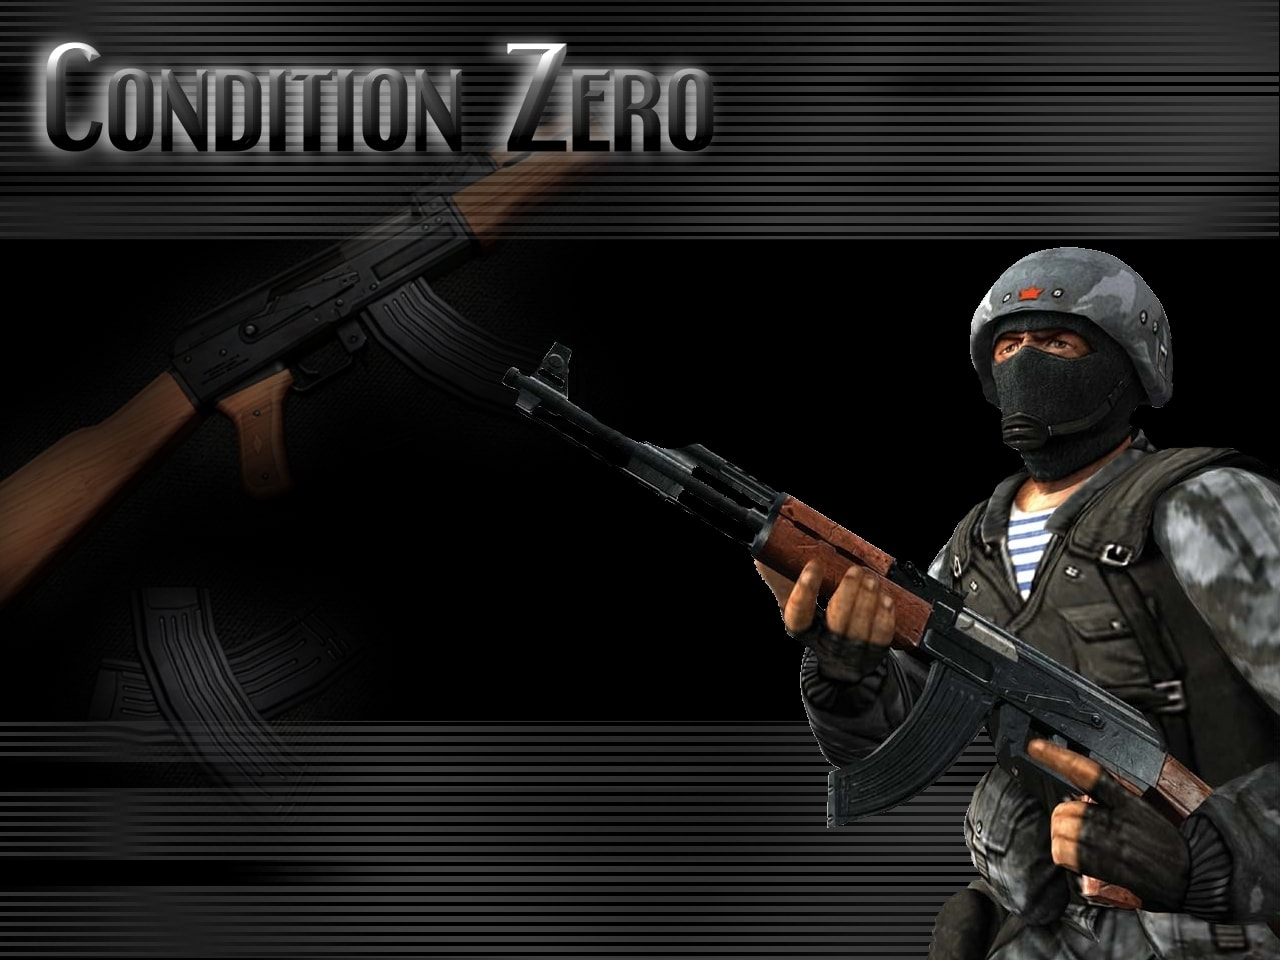 Counter-Strike: Condition Zero Wallpapers hd